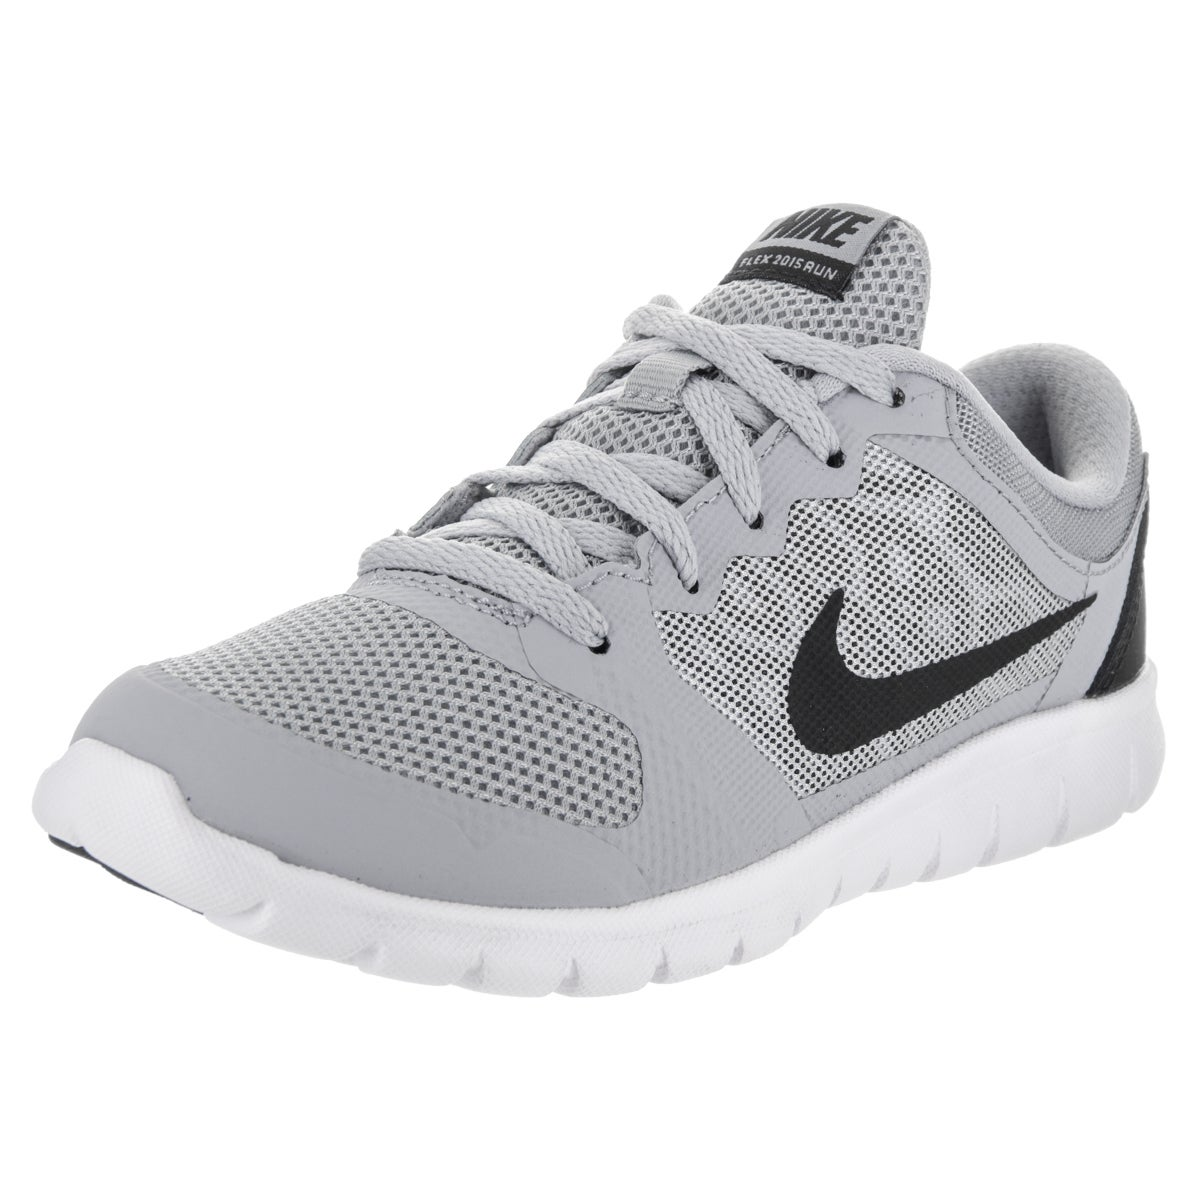 Nike Kids Flex 2015 Rn (PS) Running Shoe (11), Boy's, Gre...